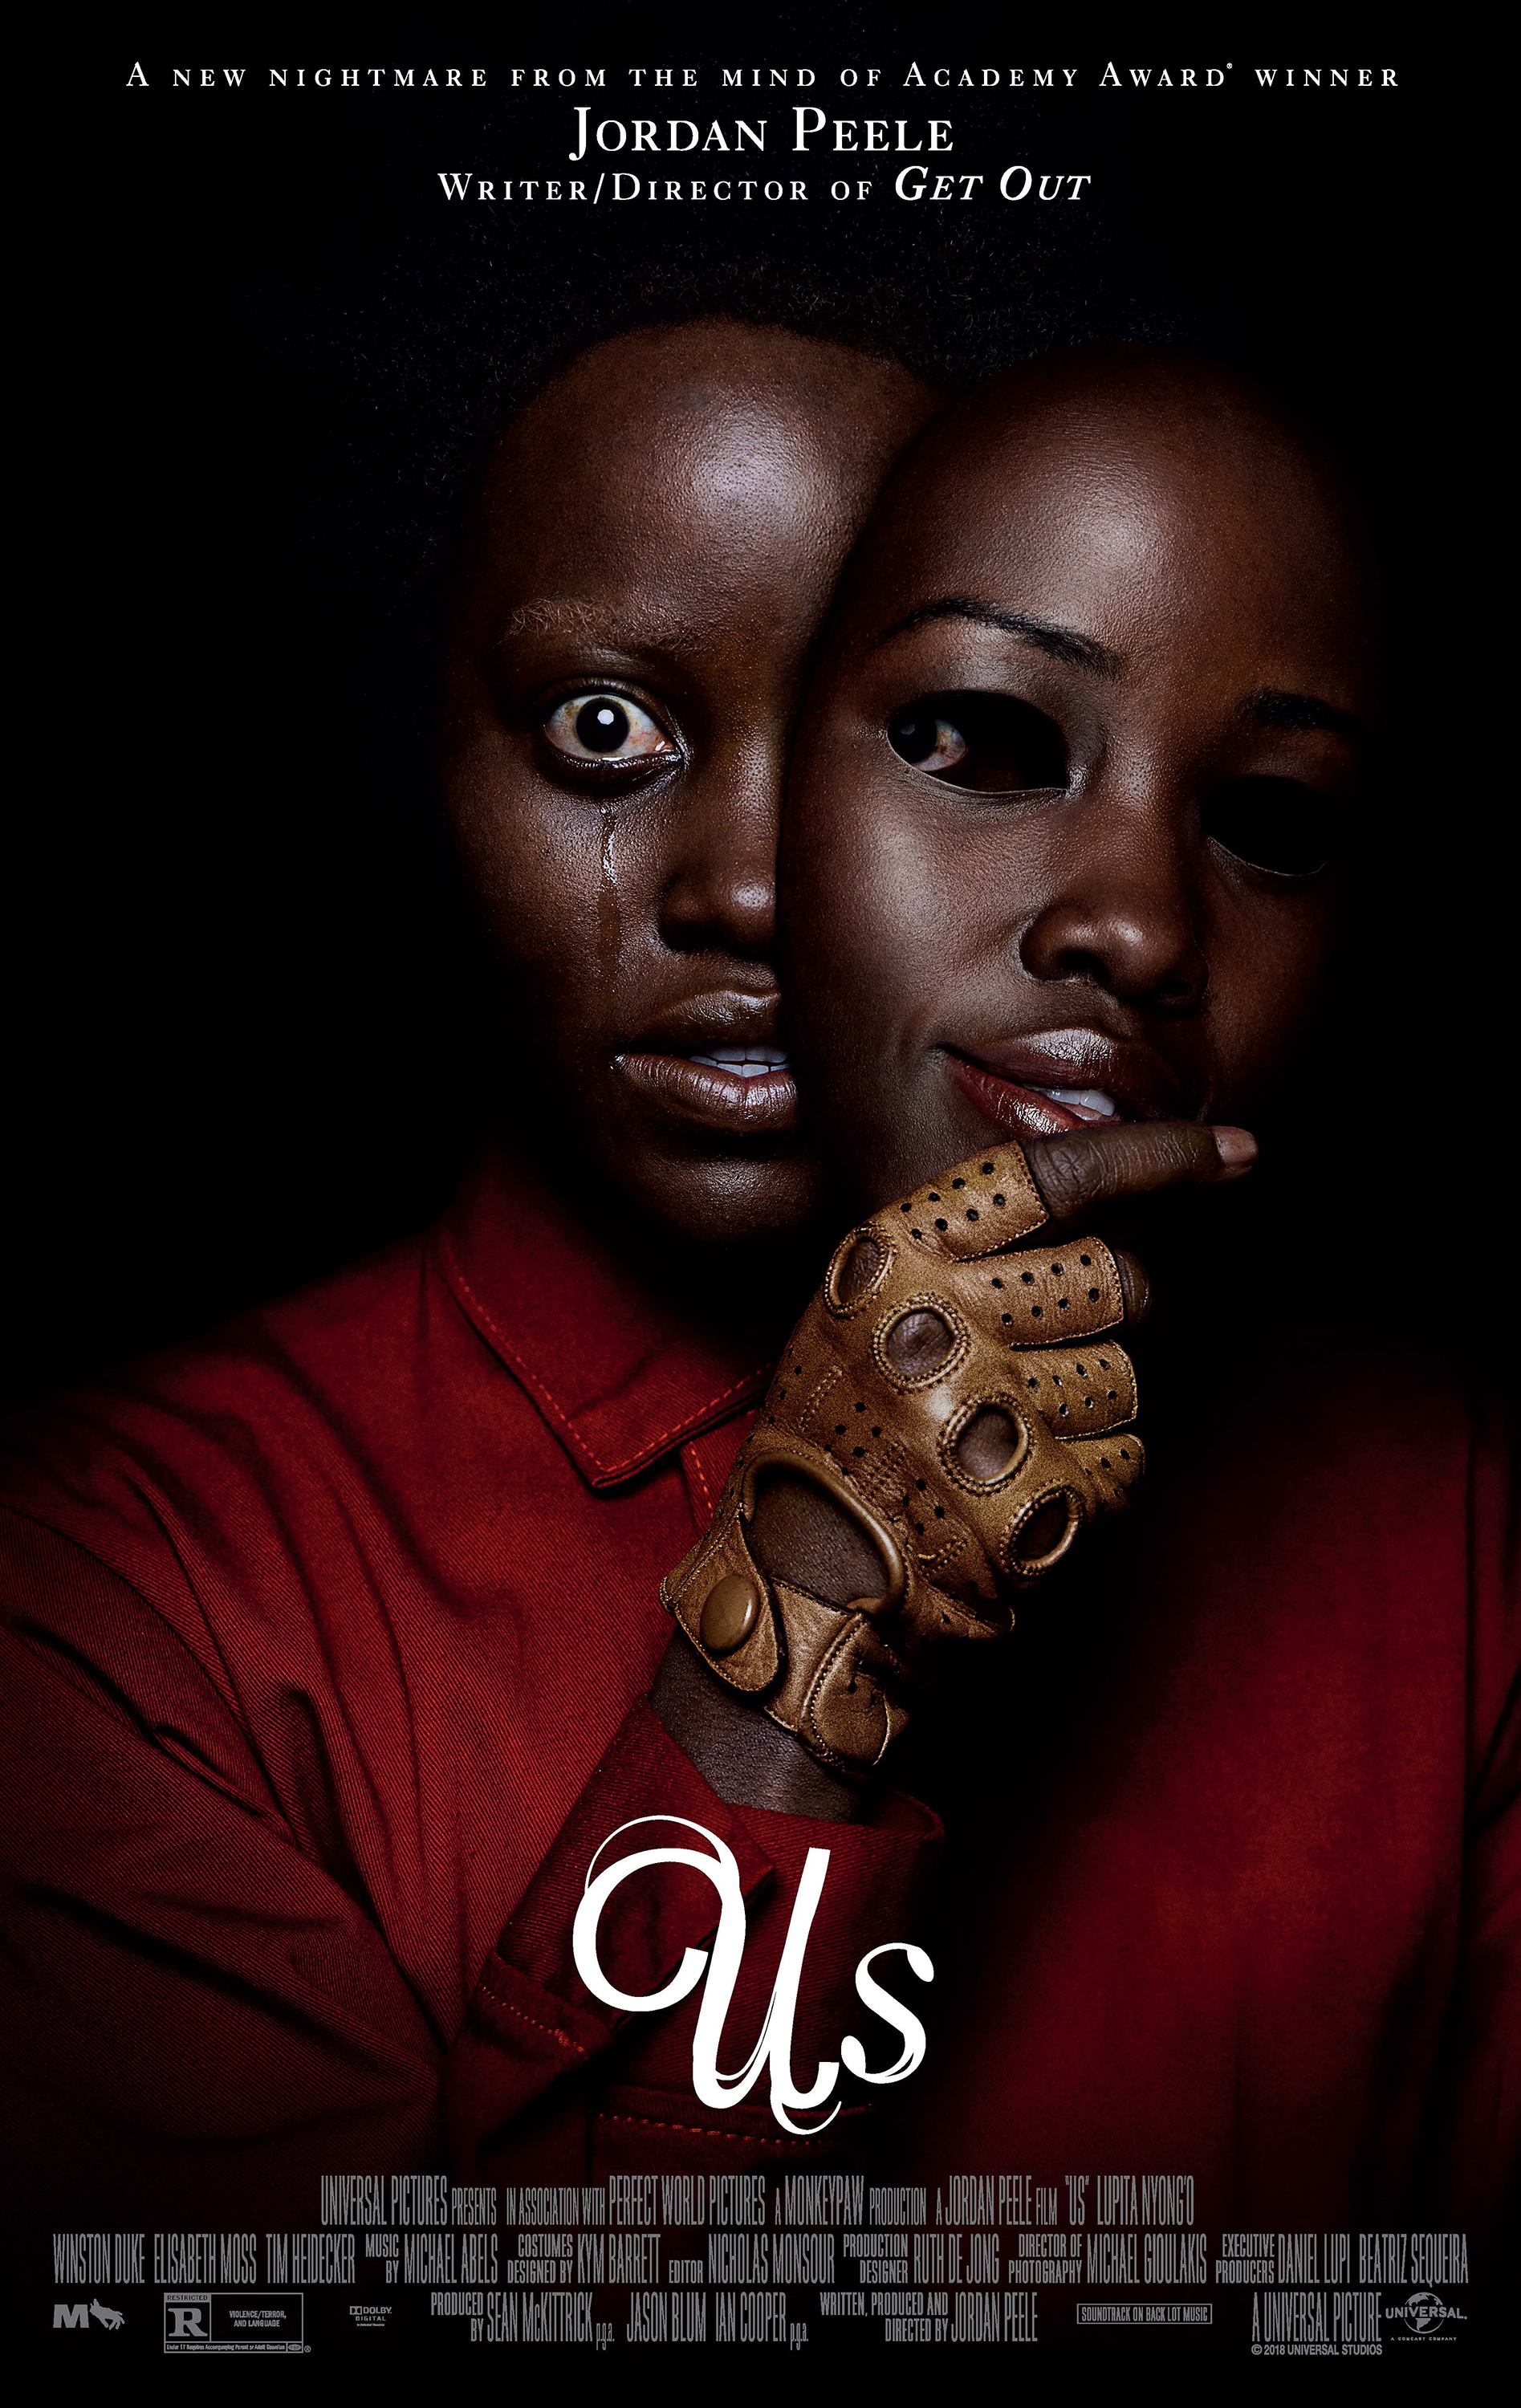 Us (2019) - Directed by: Jordan PeeleStarring: Lupita Nyong'o, Winston Duke, Elisabeth Moss, Tim Heidecker, Shahadi Wright Joseph, Evan AlexRated: R for Violence/Terror, and LanguageRunning Time: 1 h 56 mTMM Score: 5 stars out of 5STRENGTHS: Writing, Directing, Acting, MessageWEAKNESSES: -